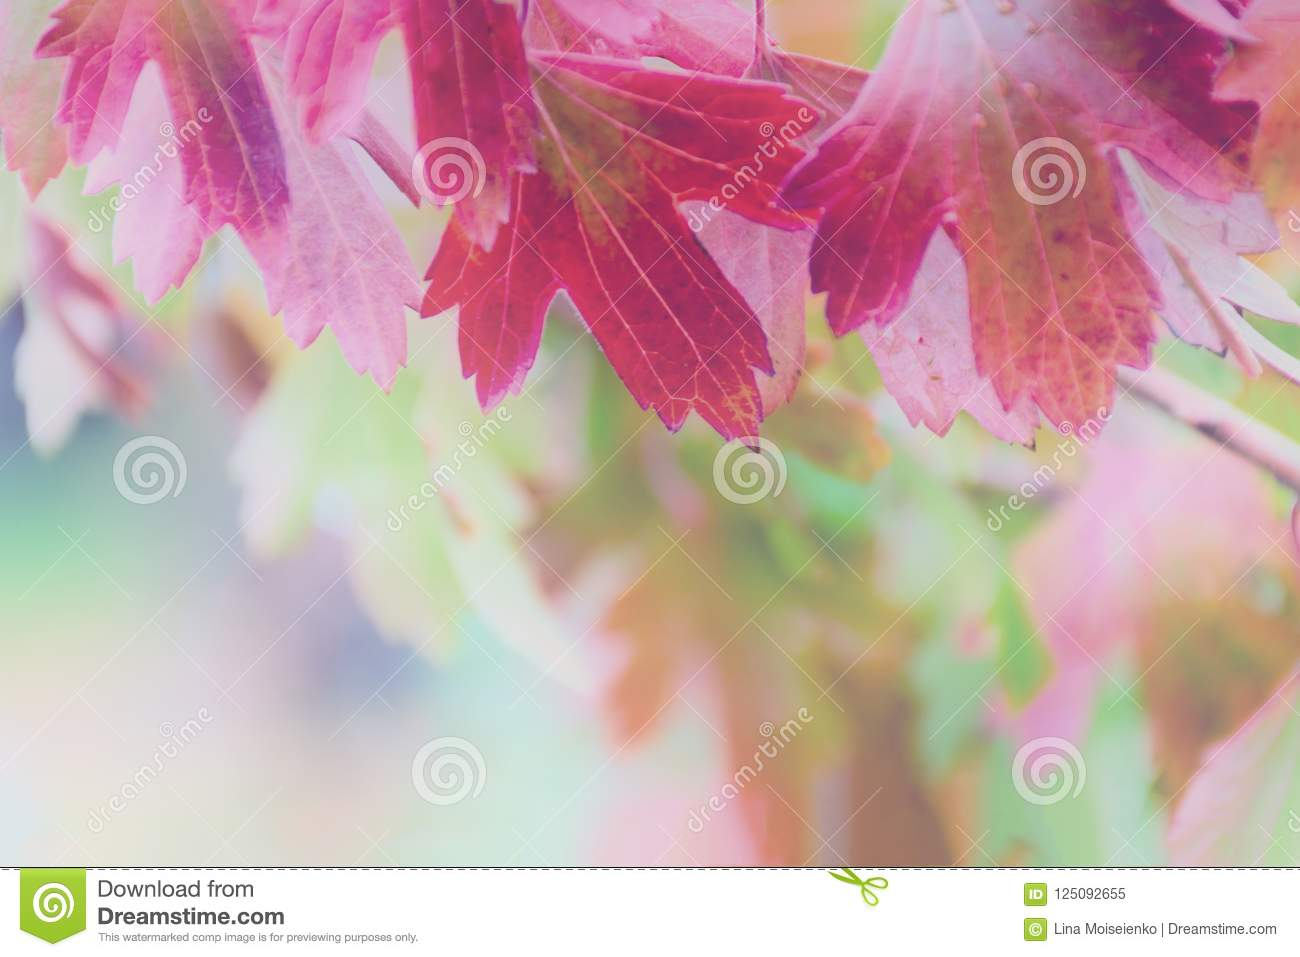 Colorful and bright background of blurred autumn leaf